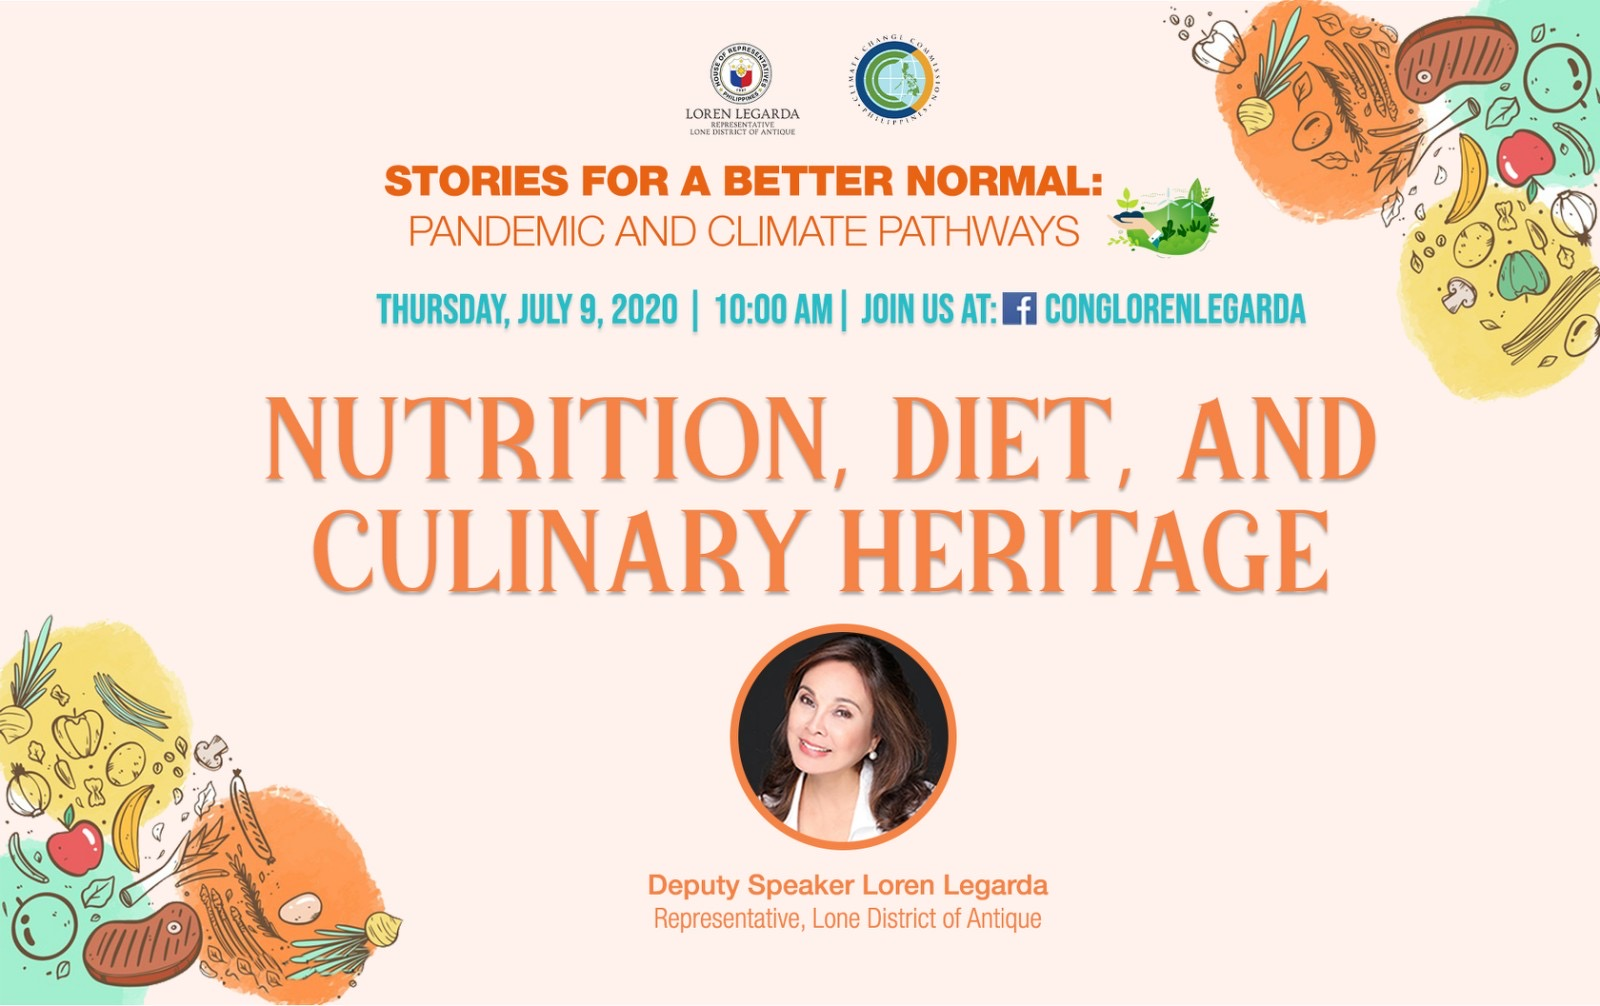 Nutrition, Diet, and Culinary Heritage